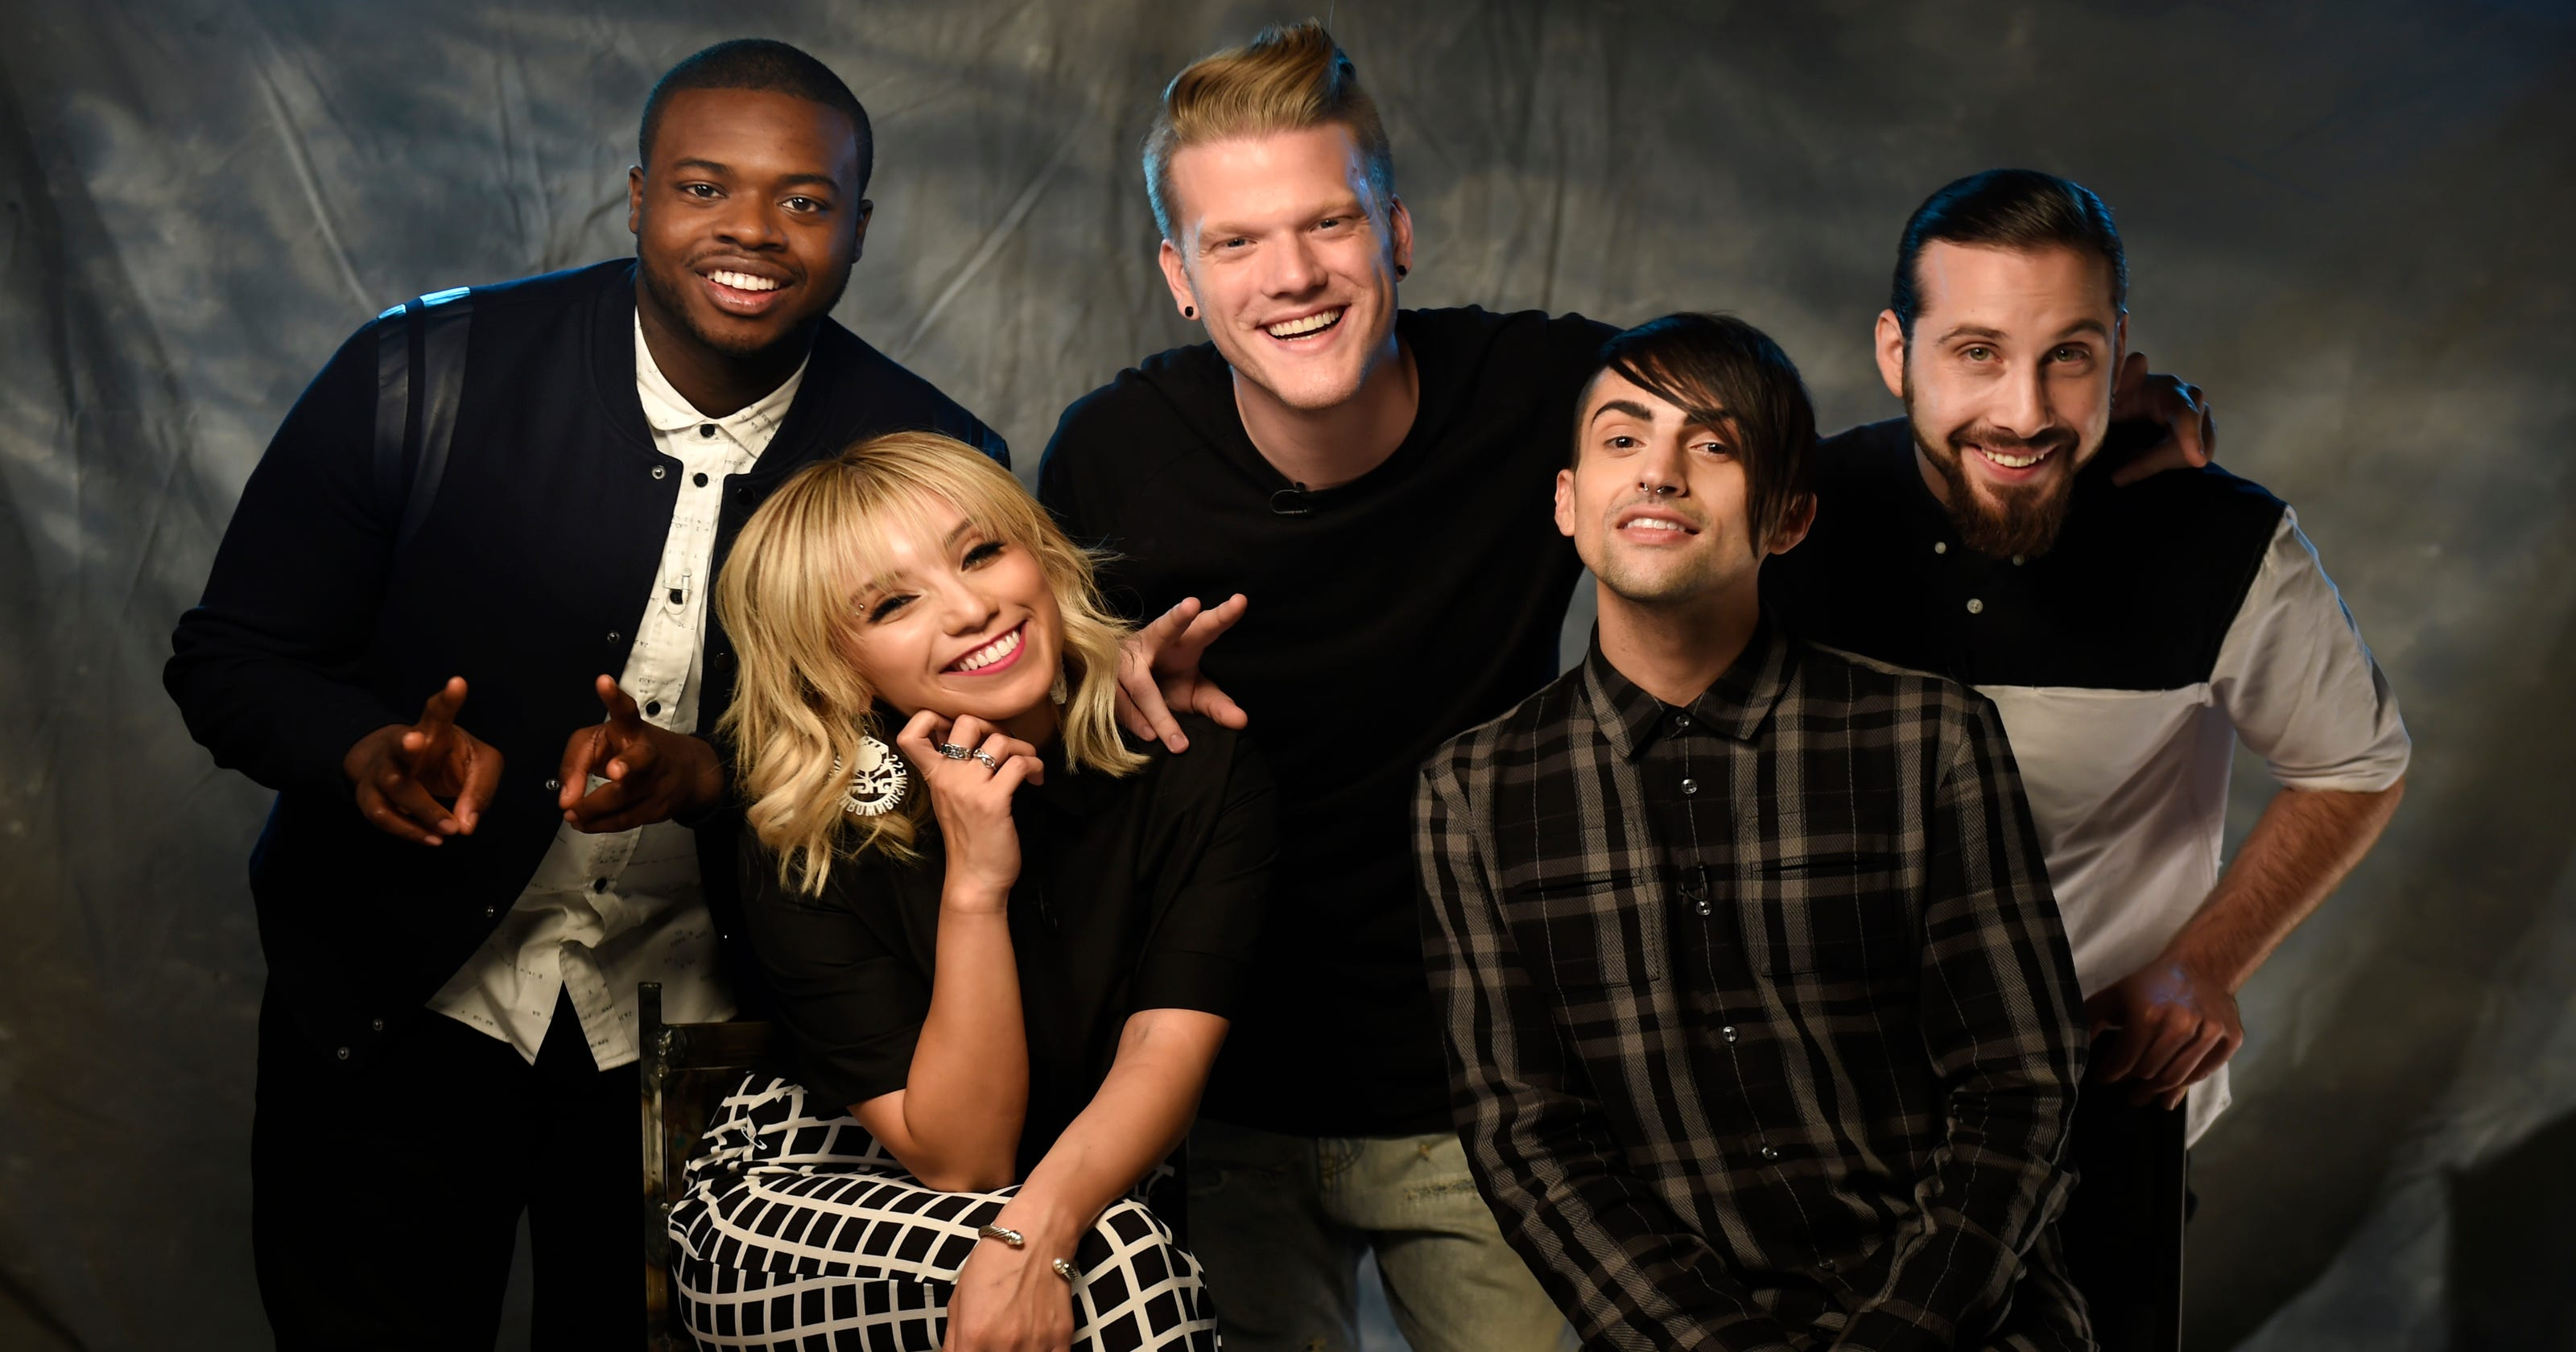 The Pentatonix's cover of 'Hallelujah' will leave you speechless